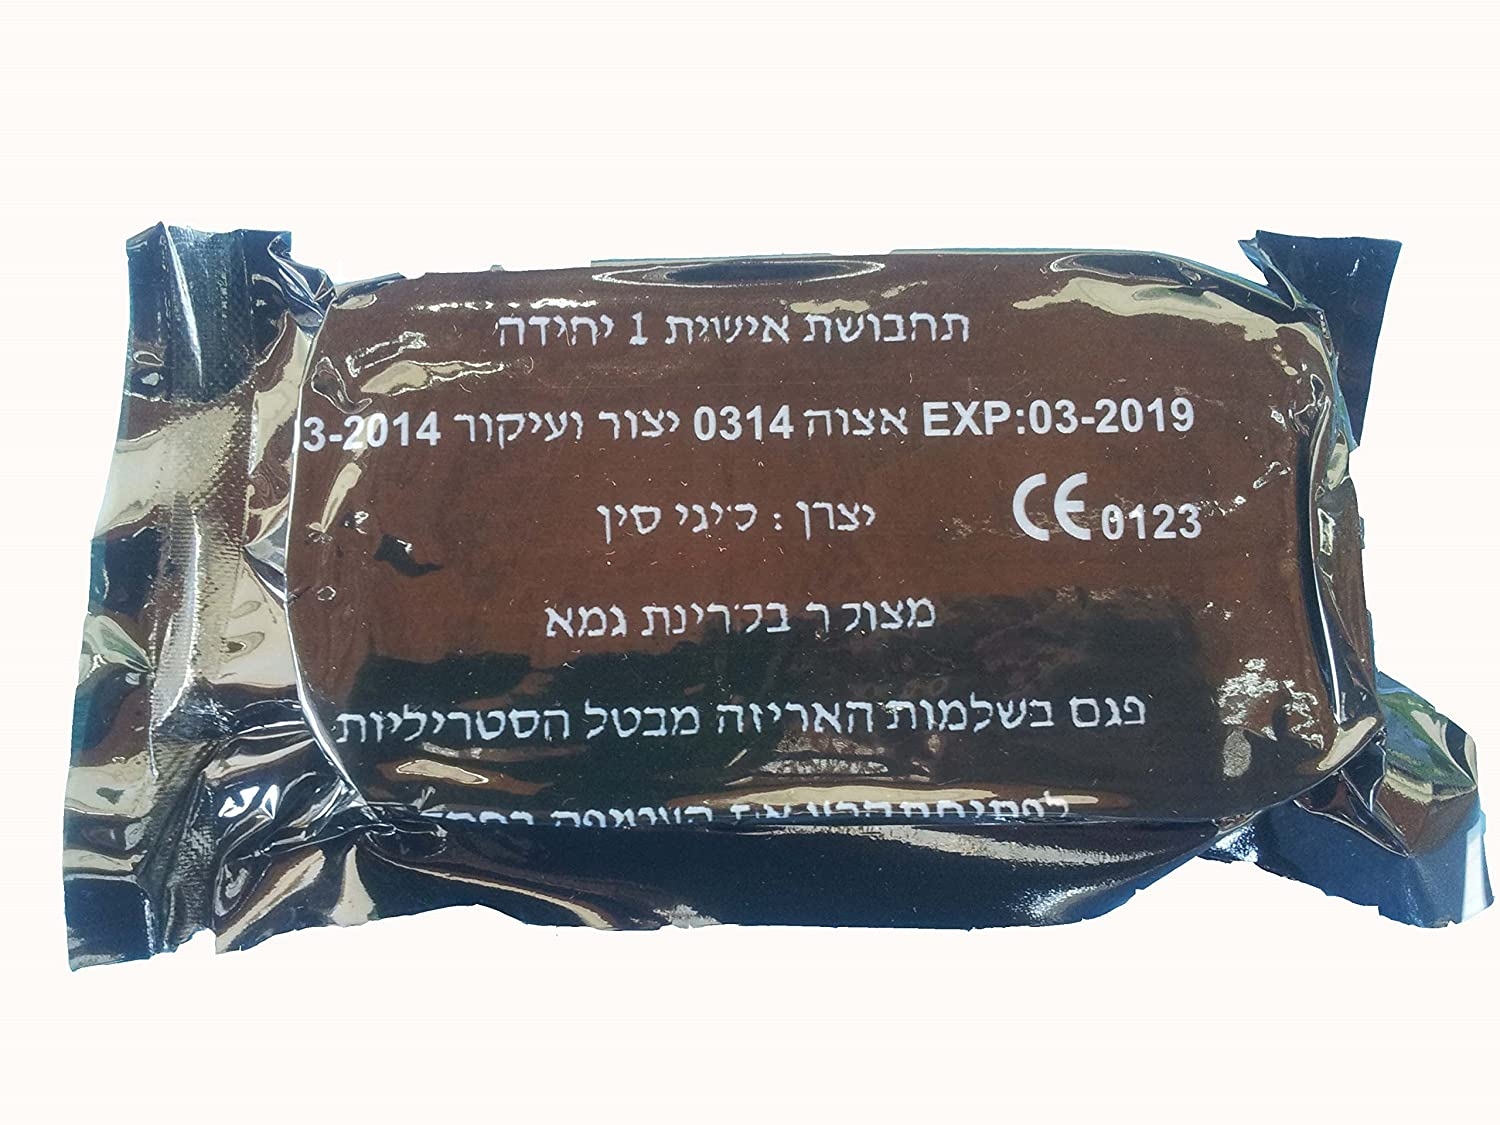 Military Emergency First Aid Compression Israeli Bandage Trauma Battle Dressing Hemorrhage Control, Vacuum Sealed, Sterile, Best for First Aid Kits, Indoors, Outdoors, Home, Work, Ambulances, Ifak, Earthquake Kits, Survival Kits - 6 Inch